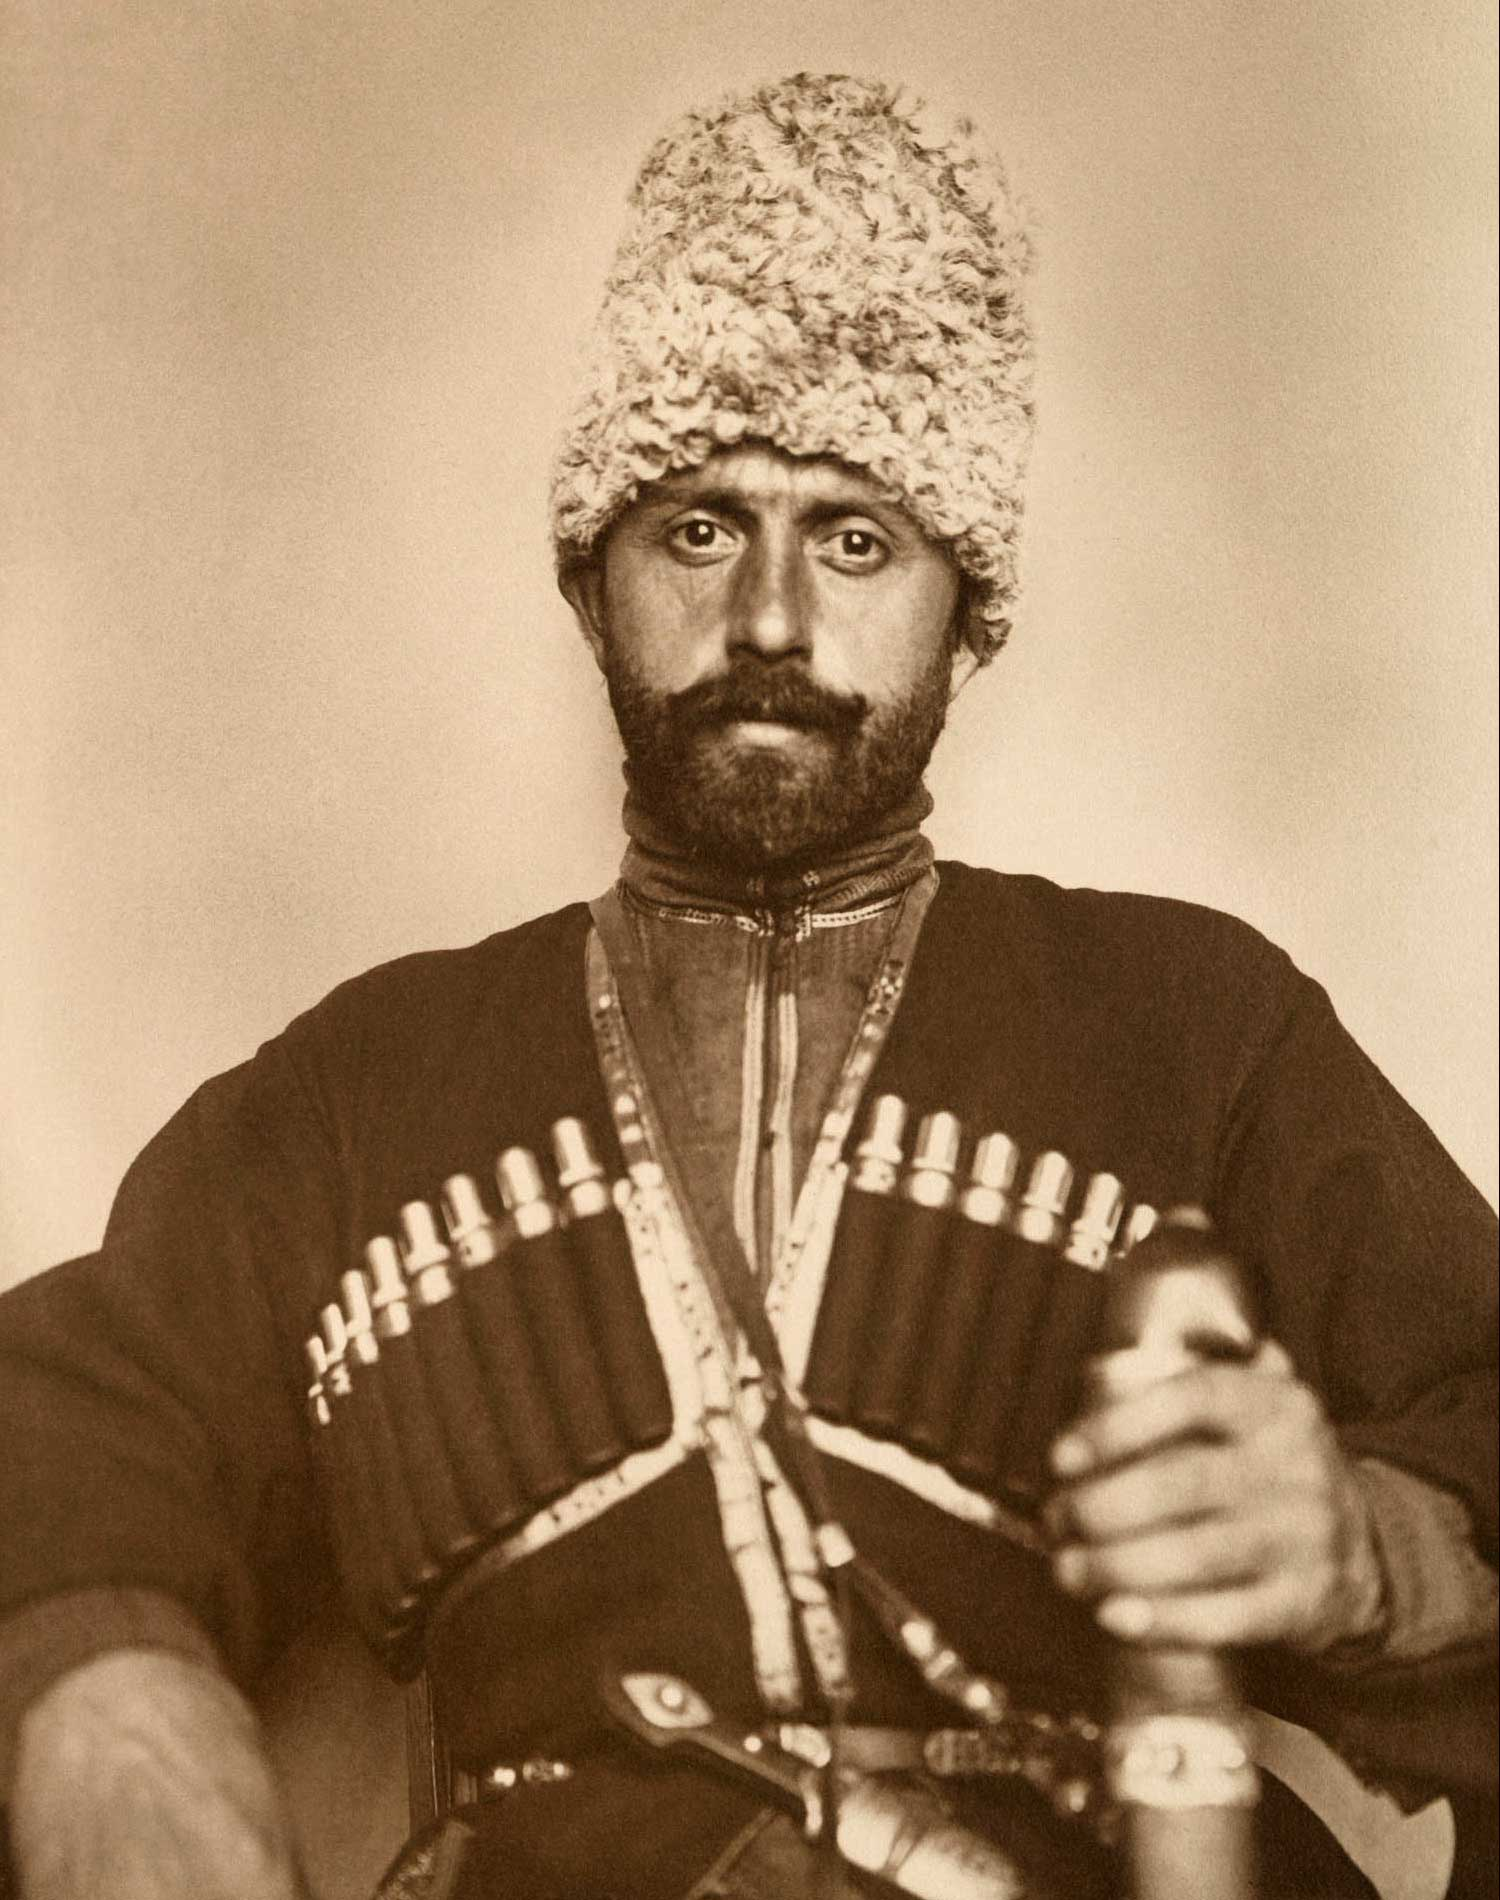 'Cossack man from the steppes of Russia' (c. 1910)